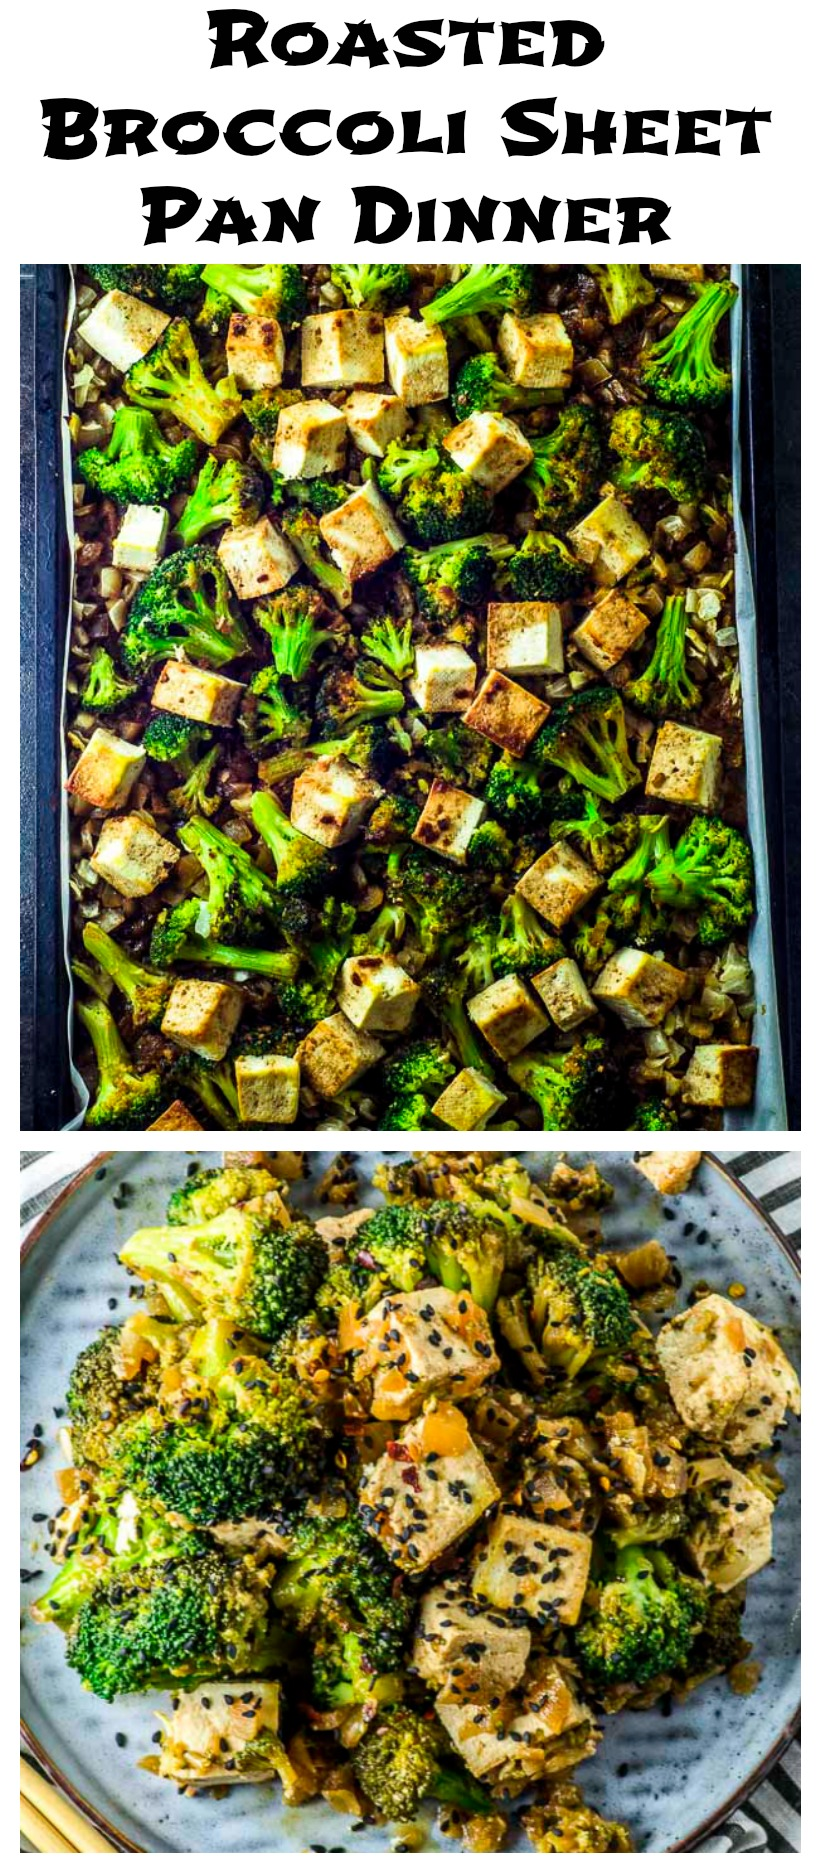 Dreaming of the day when you can hire a personal chef who will have dinner ready you after work?  Our Sesame-Teriyaki Tofu & Roasted Broccoli Sheet Pan Dinner is so quick and easy, you'll feel like your dream came true! #Sheet Pan Dinner #vegan # gluten free # tofu #broccoli